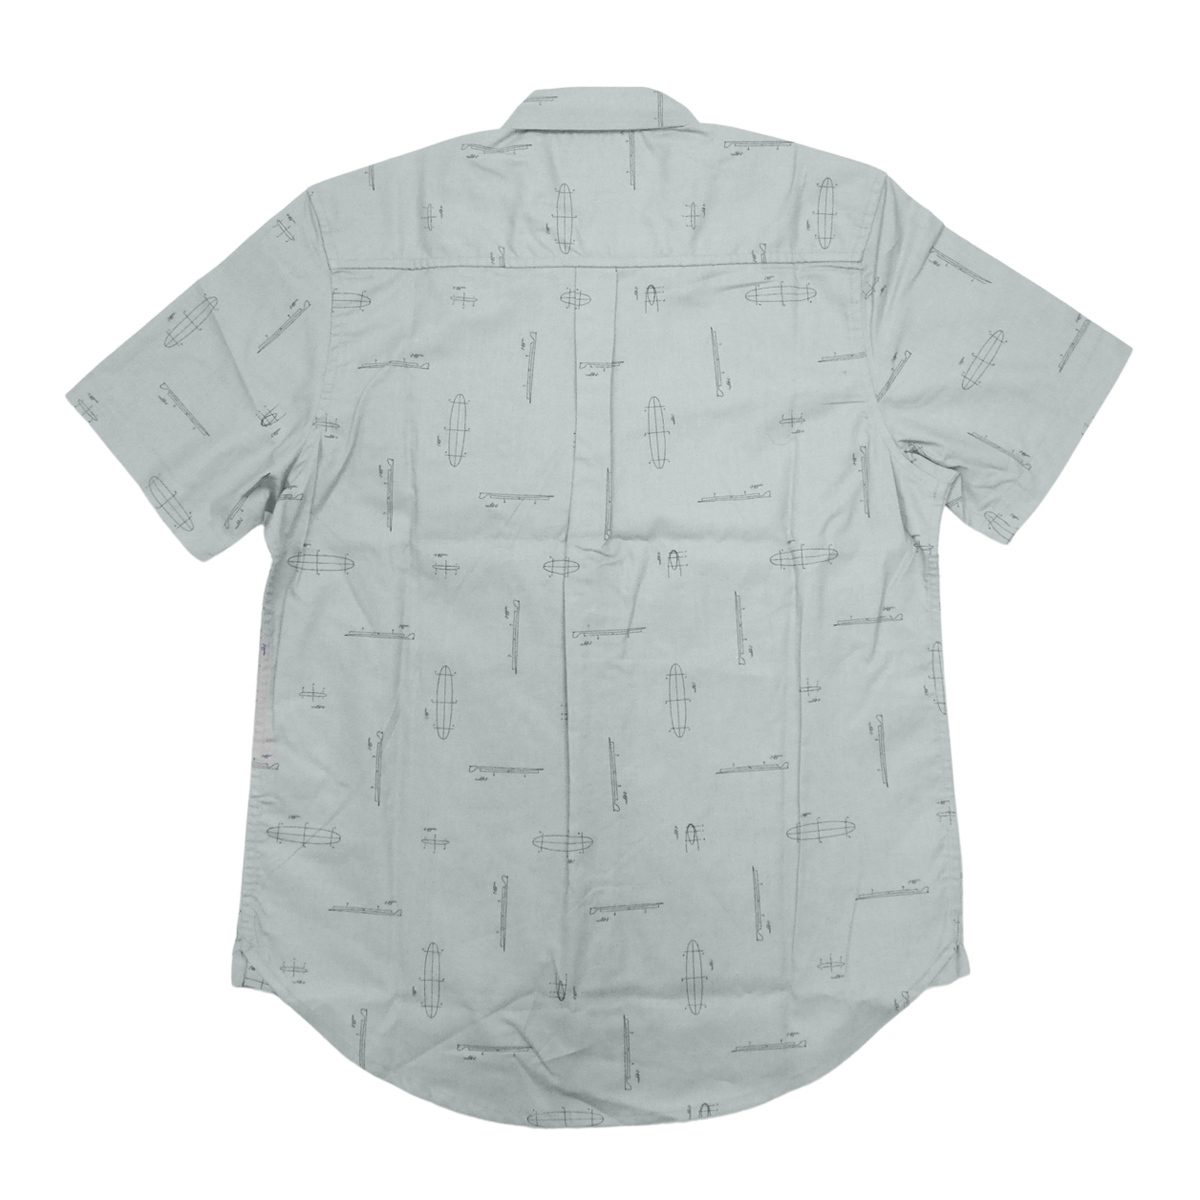 Almond Surf アーモンドサーフボードデザイン SURF THUMP WOVEN S/S SHIRTS